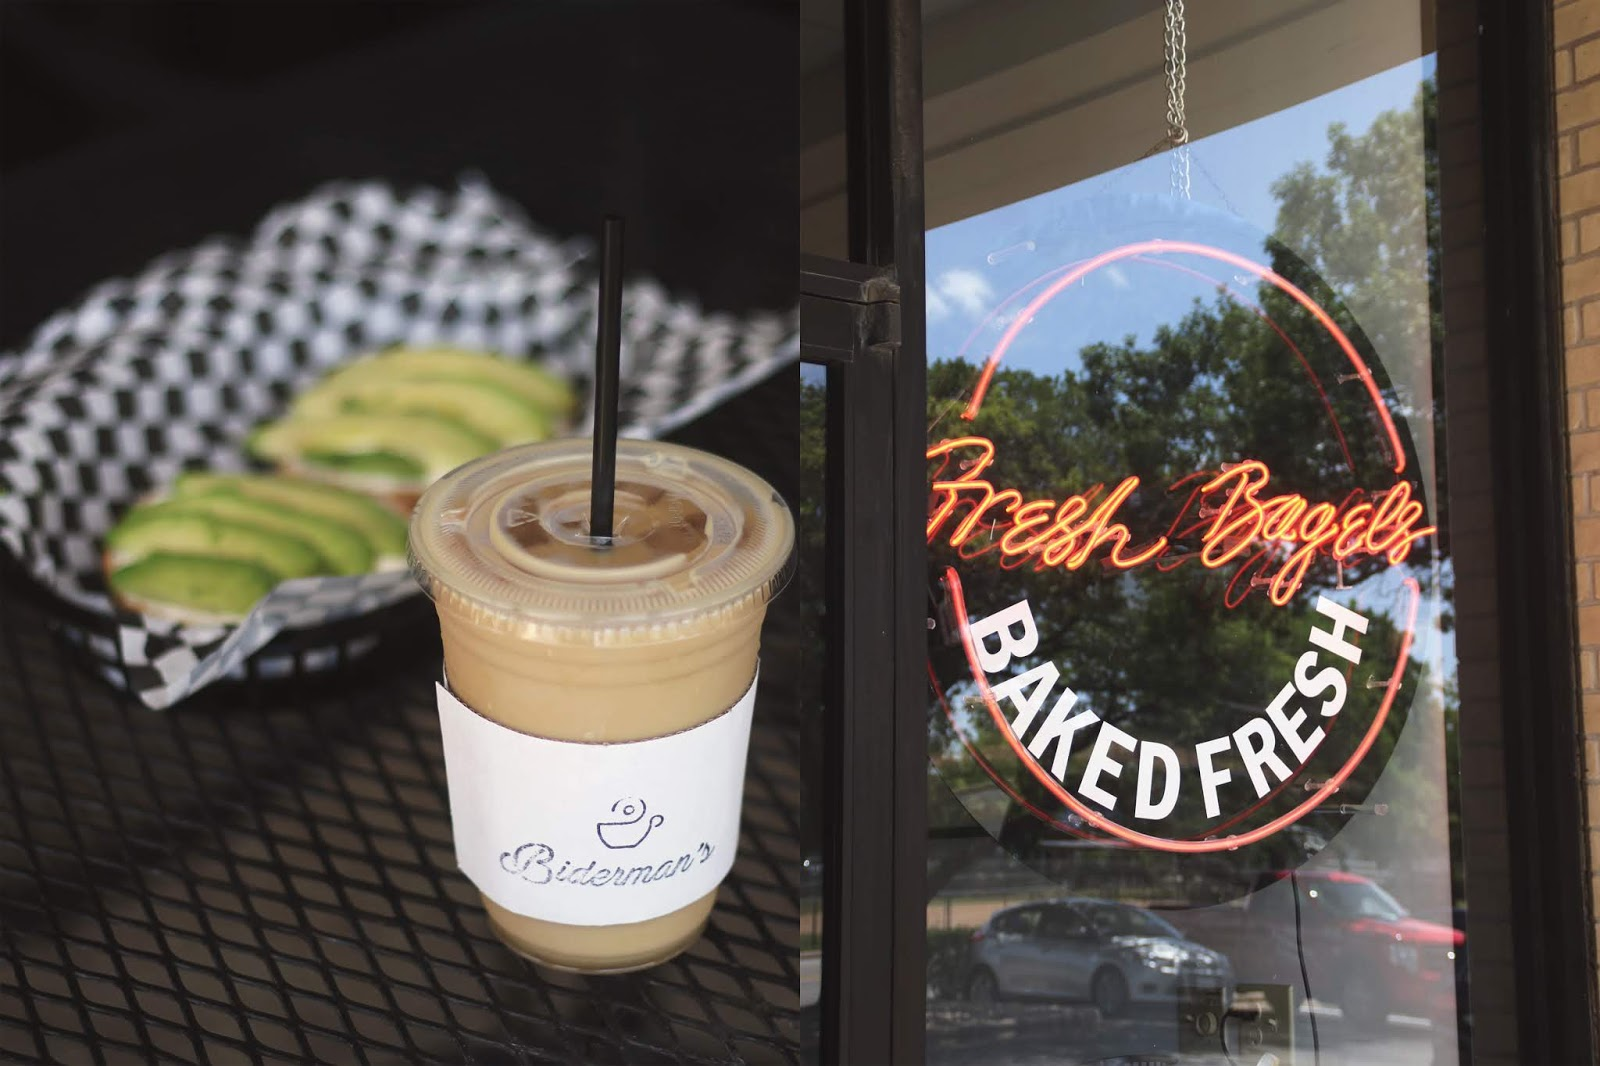 Biderman's Austin, Iced Coffee, Cozy Coffee Shop, Coffee Shops Vibe